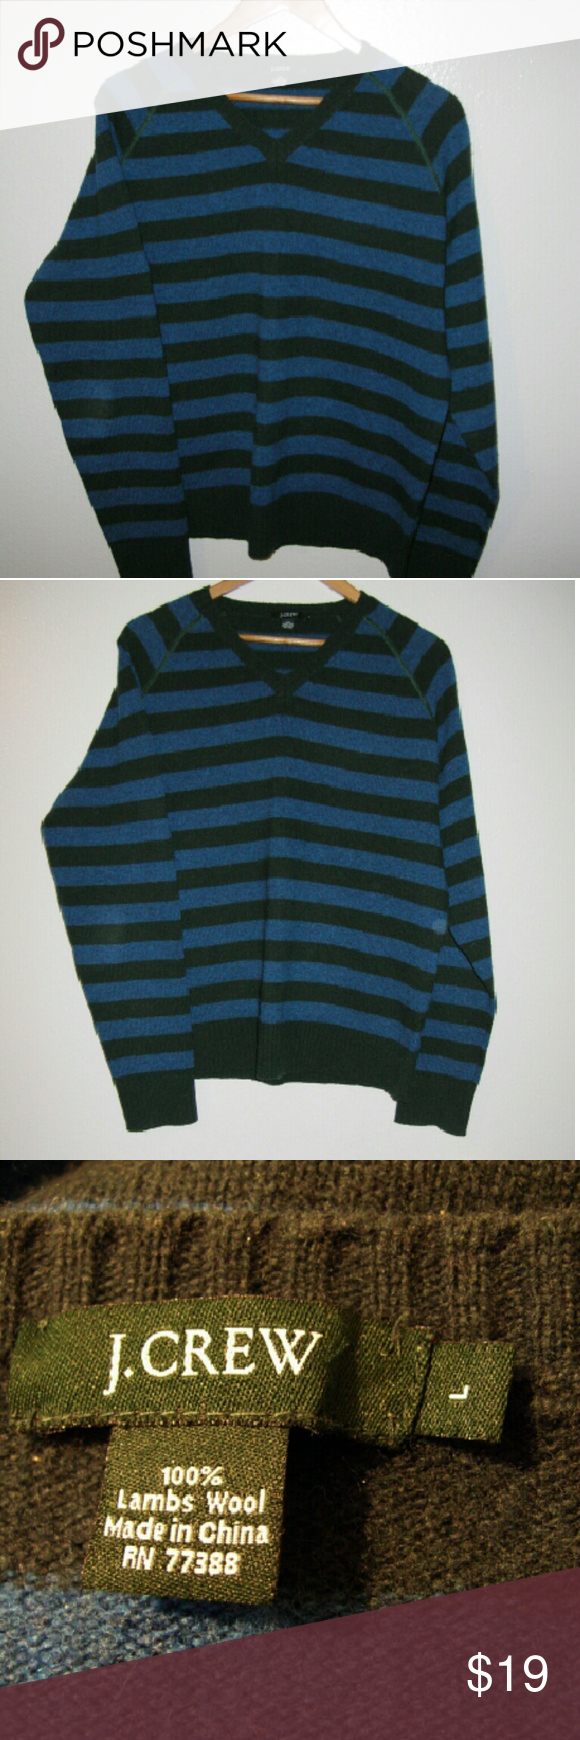 """J Crew vneck sweater striped L All wool casual loose sweater Bust 48"""" Long 26"""" Great condition! J. Crew Sweaters V-Necks"""